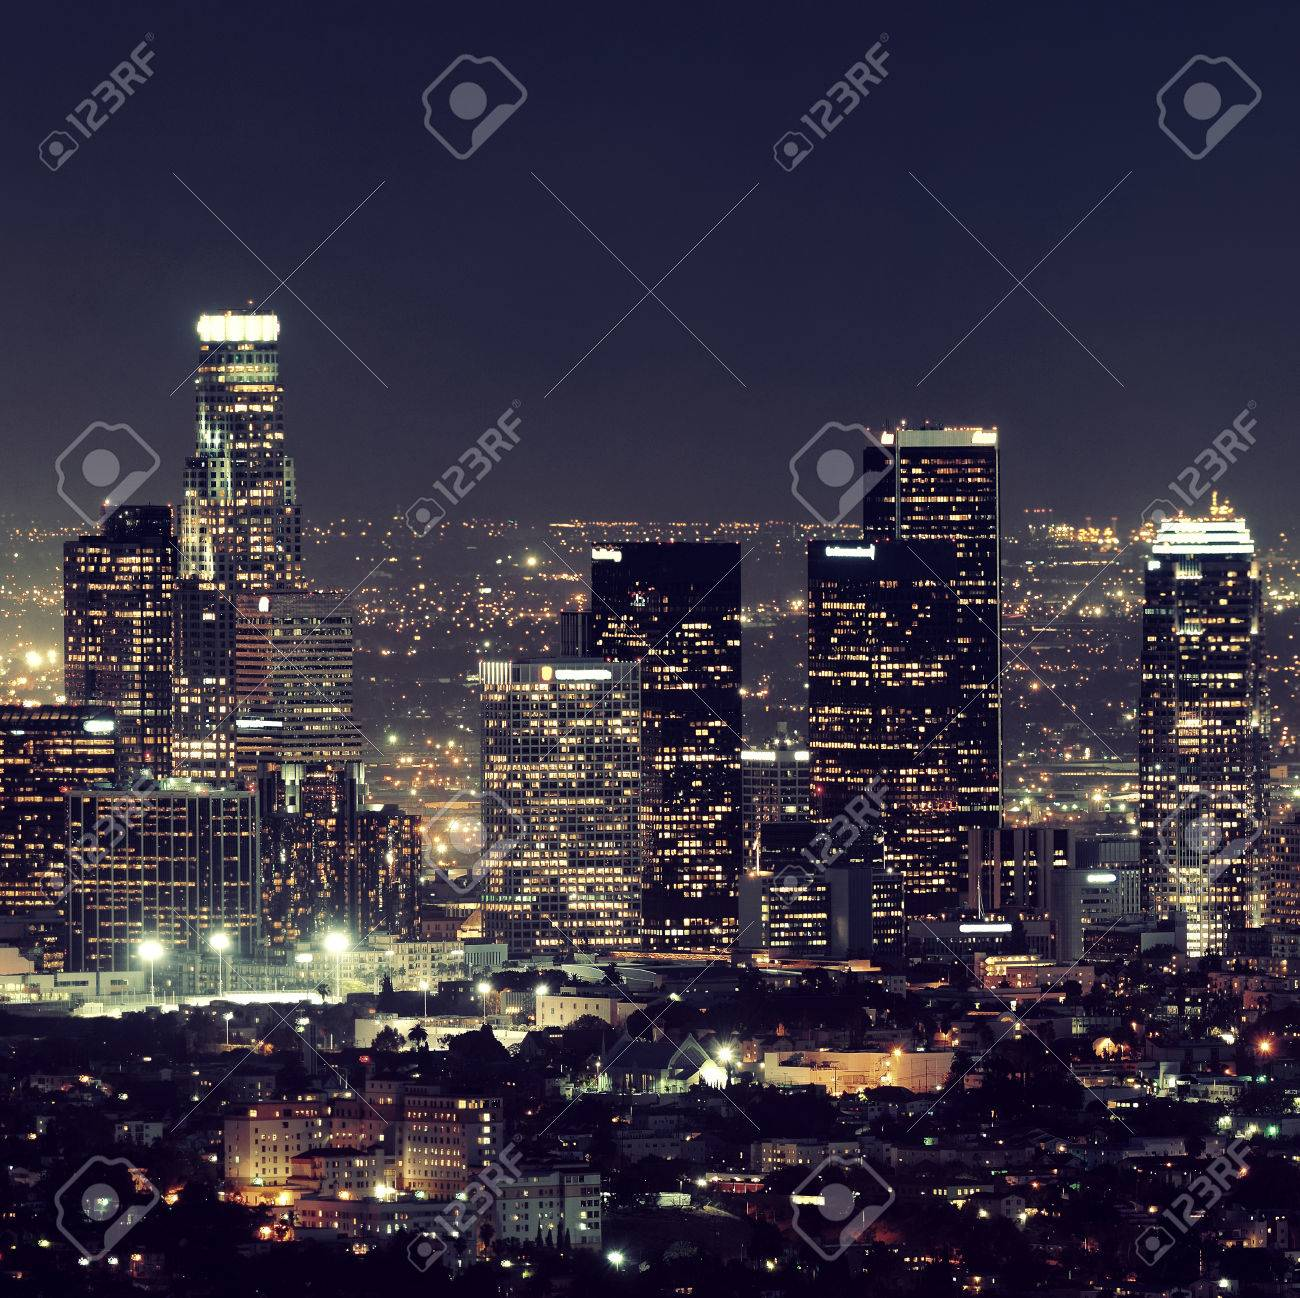 Los Angeles downtown buildings at night - 39423976